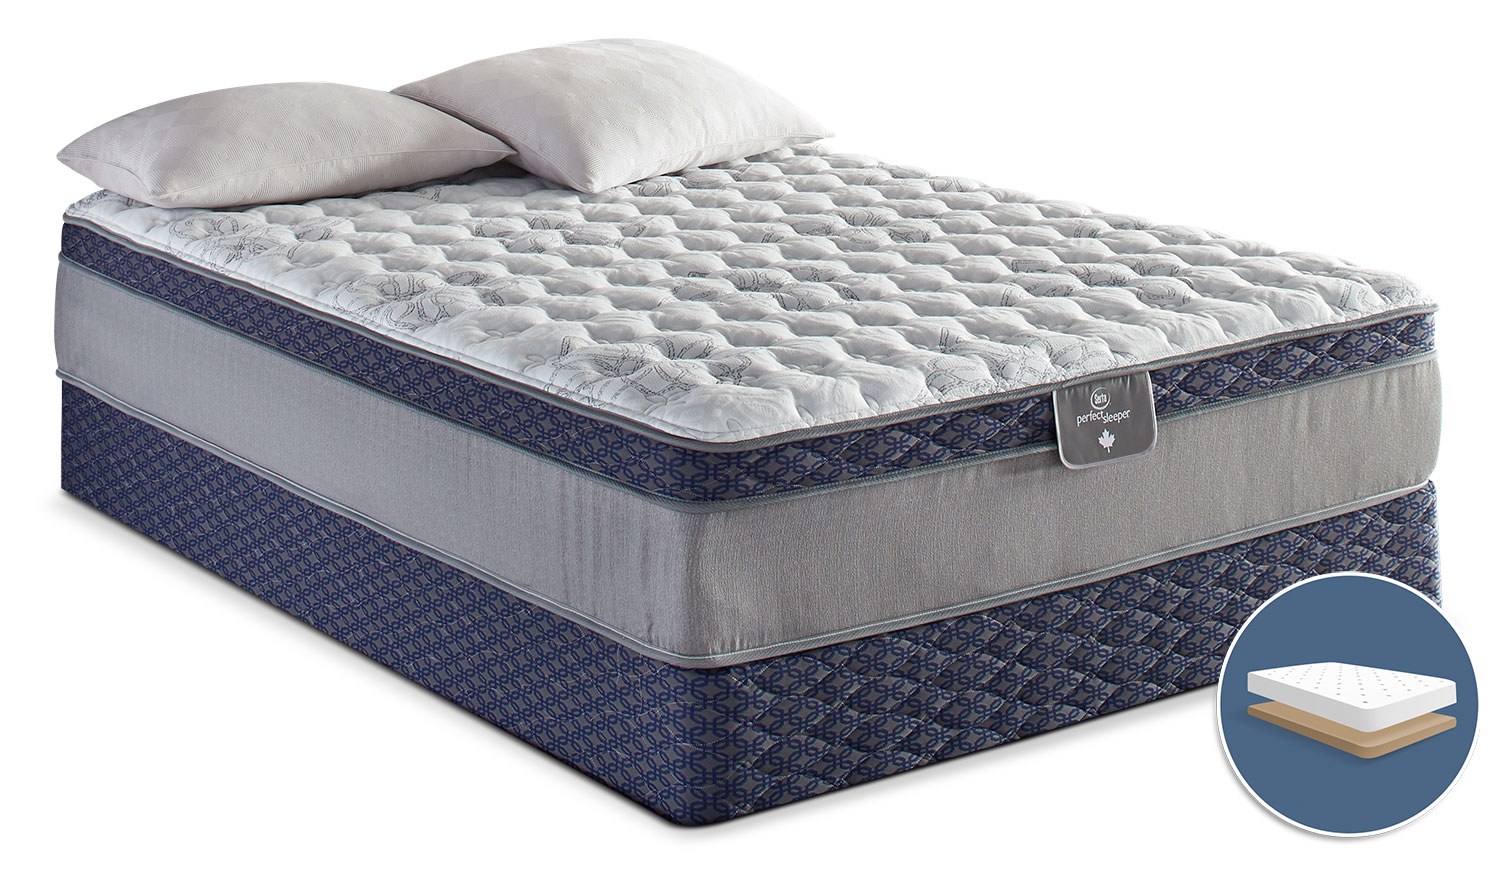 Mattresses and Bedding - Serta Perfect Sleeper 85th Anniversary Euro-Top Firm Low-Profile Full Mattress Set